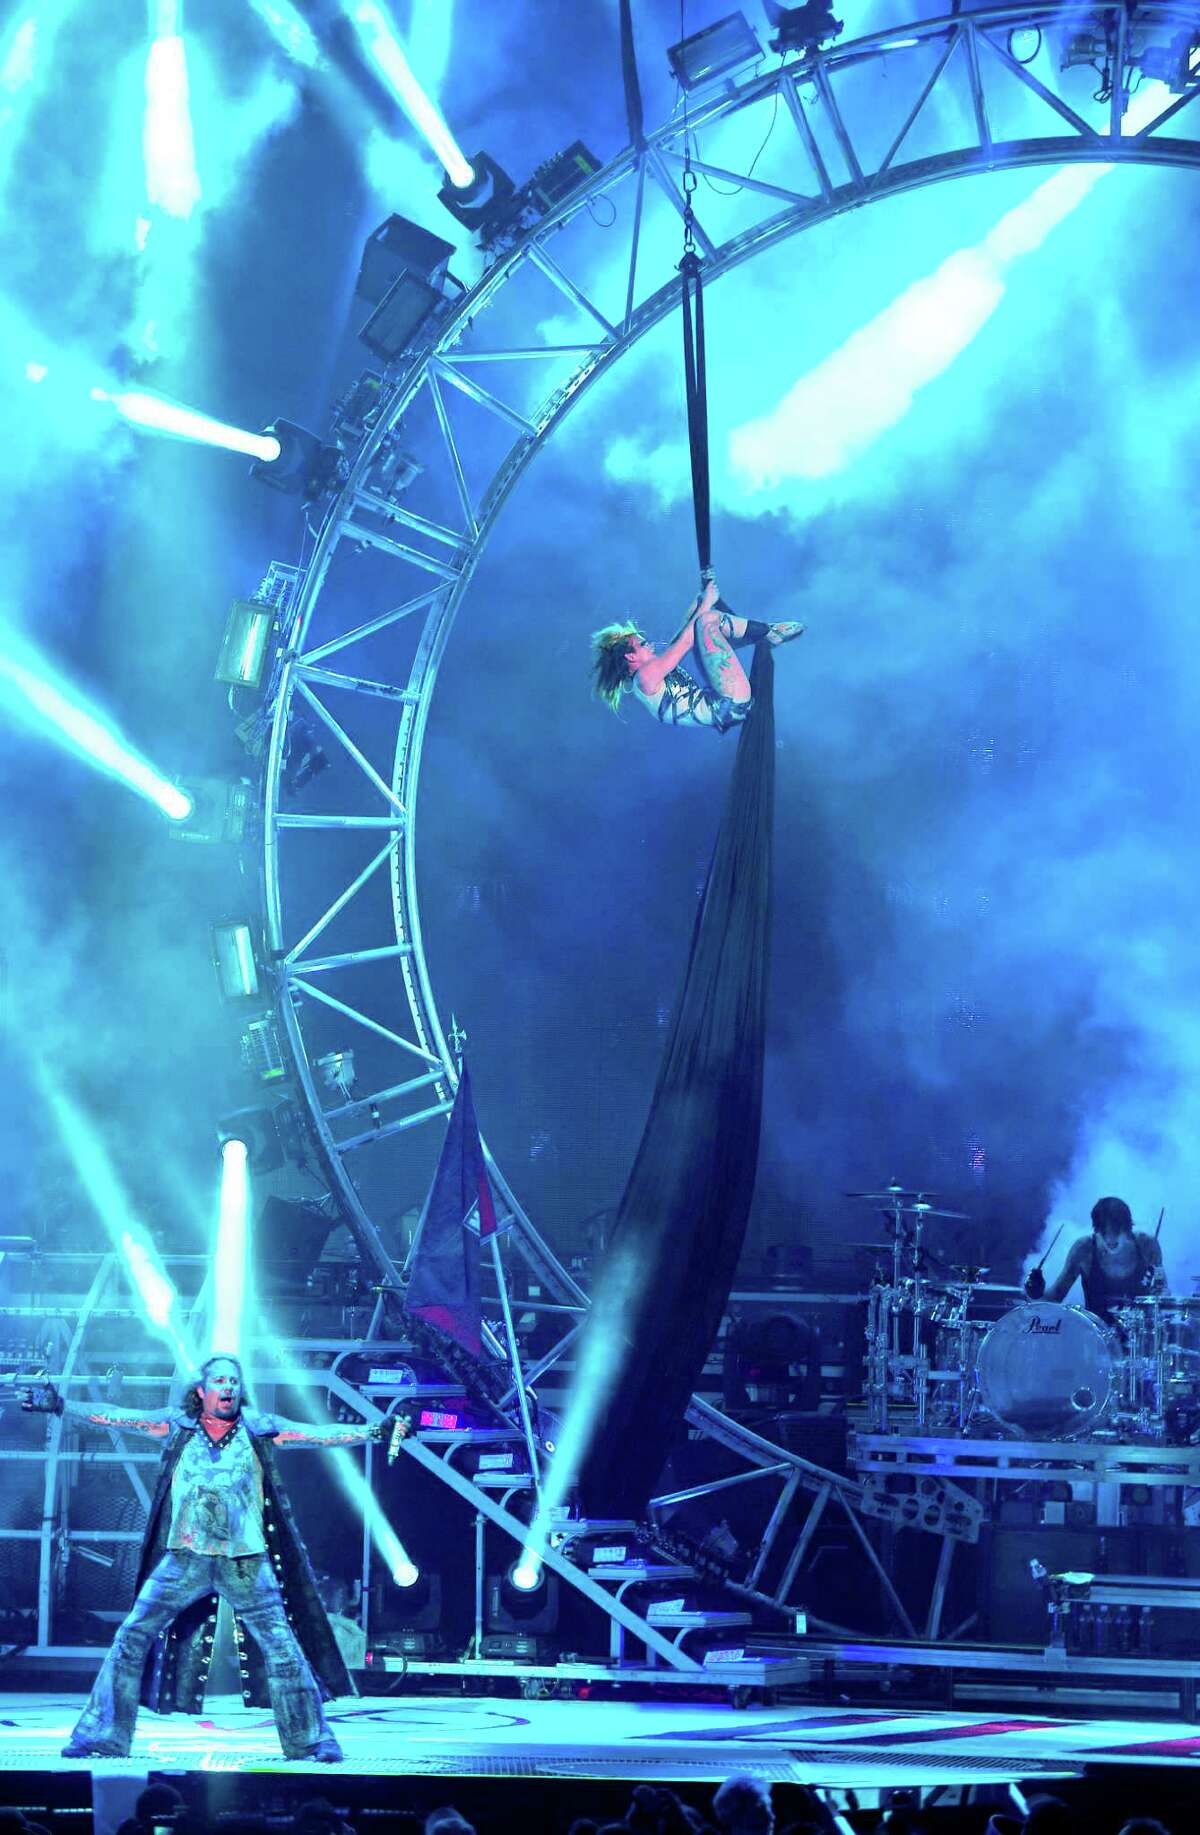 Vince Neil (left) and Tommy Lee (right) on the Cirque du Soleil-style set at the opening of their tour with Kiss July 20 in Bristow, Virginia.